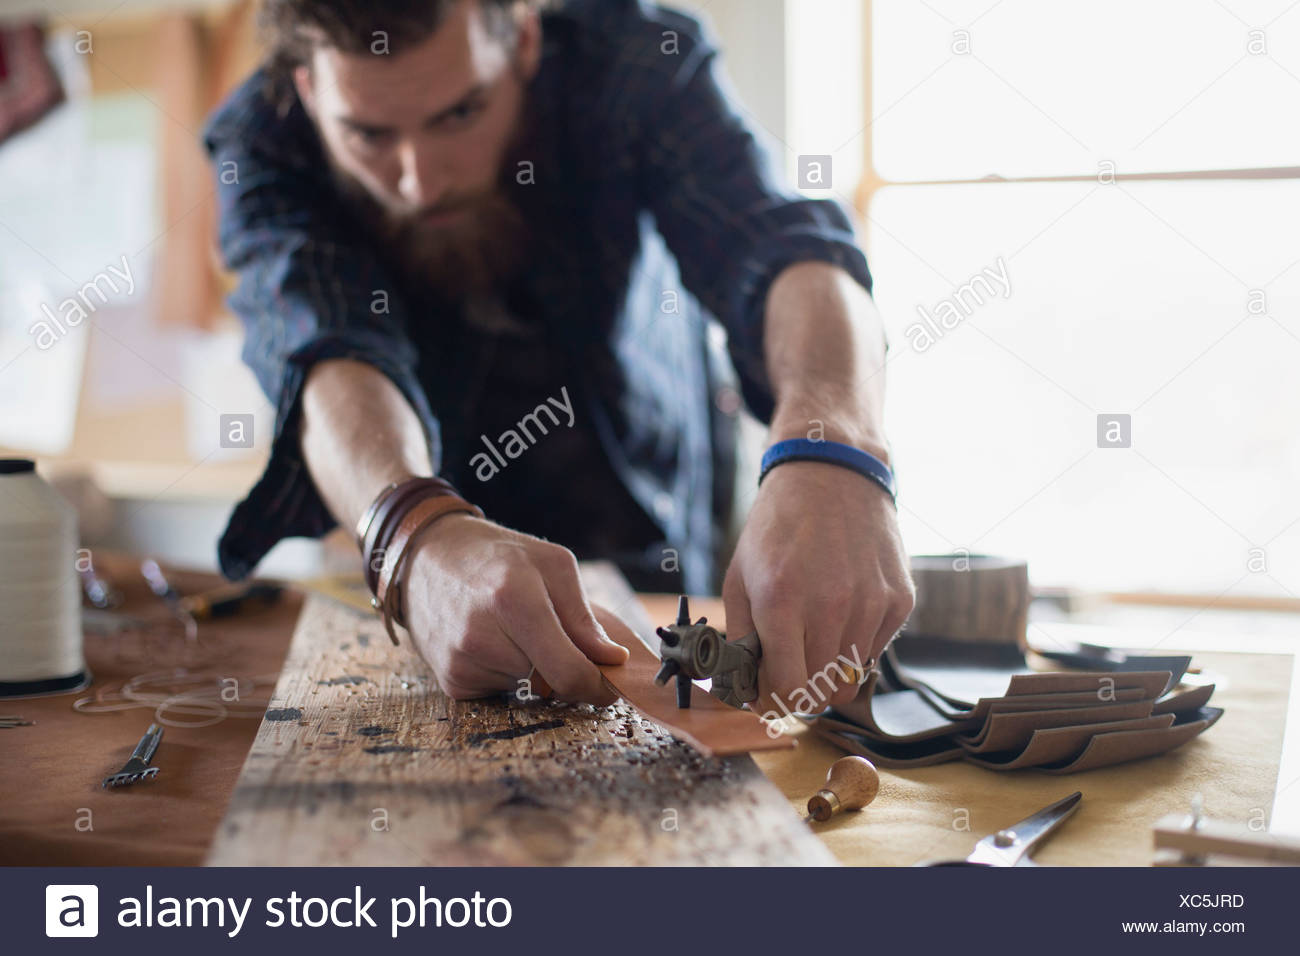 Man punching holes in leather belt at table Stock Photo